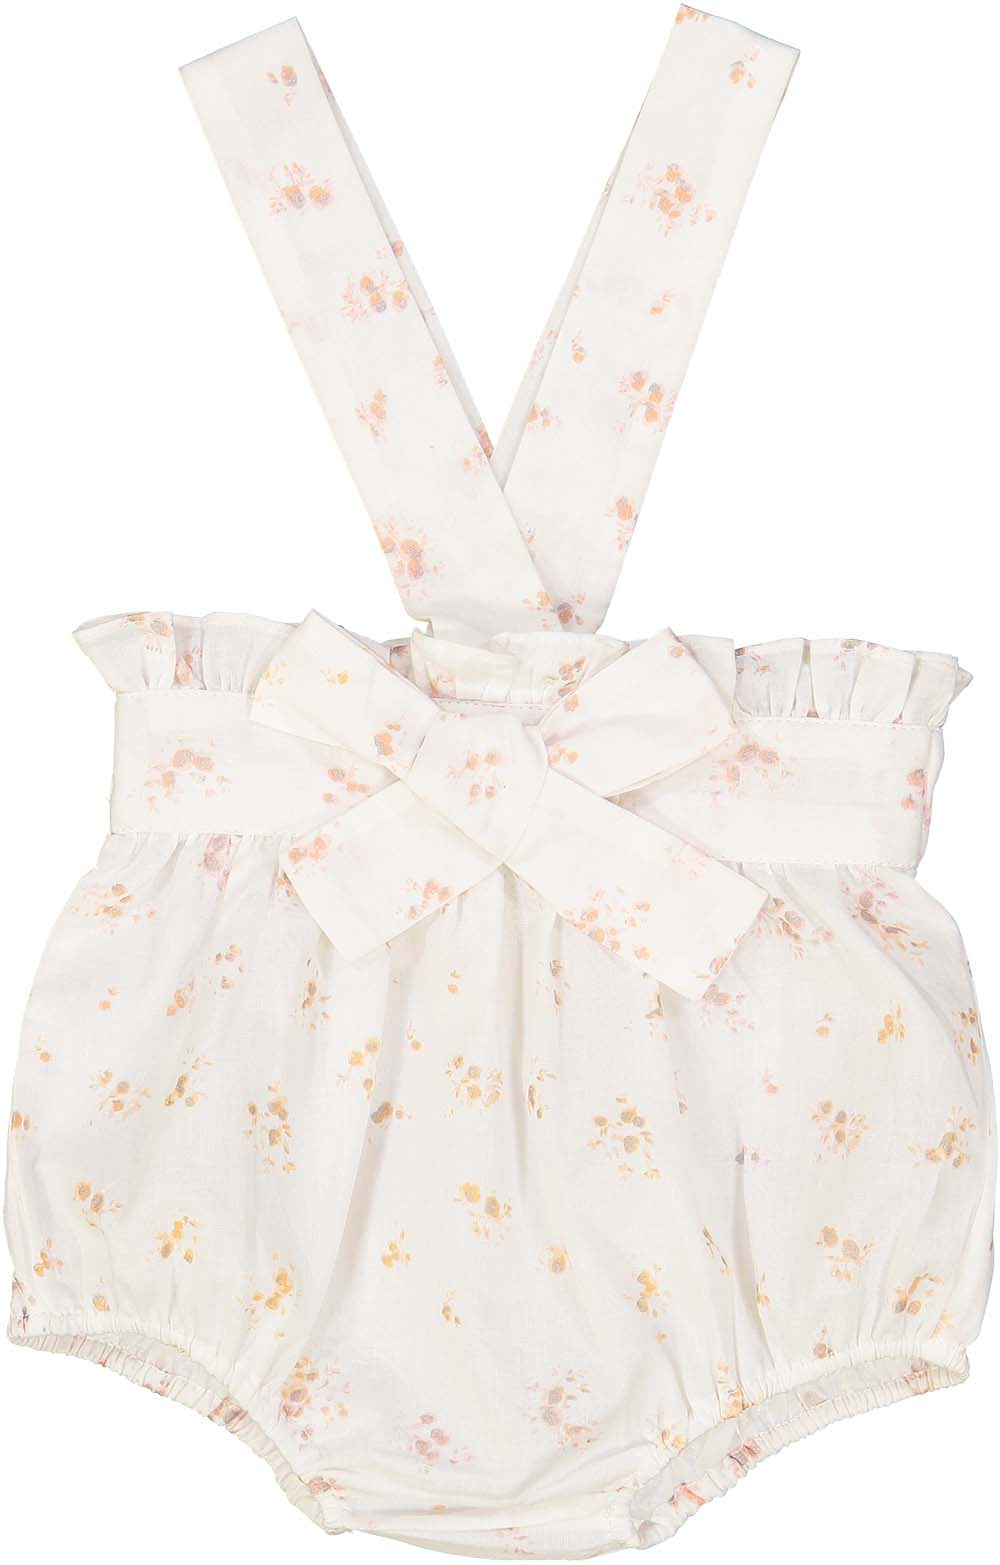 Louis Louise Pink Flowers Bella Bloomers - Ladida